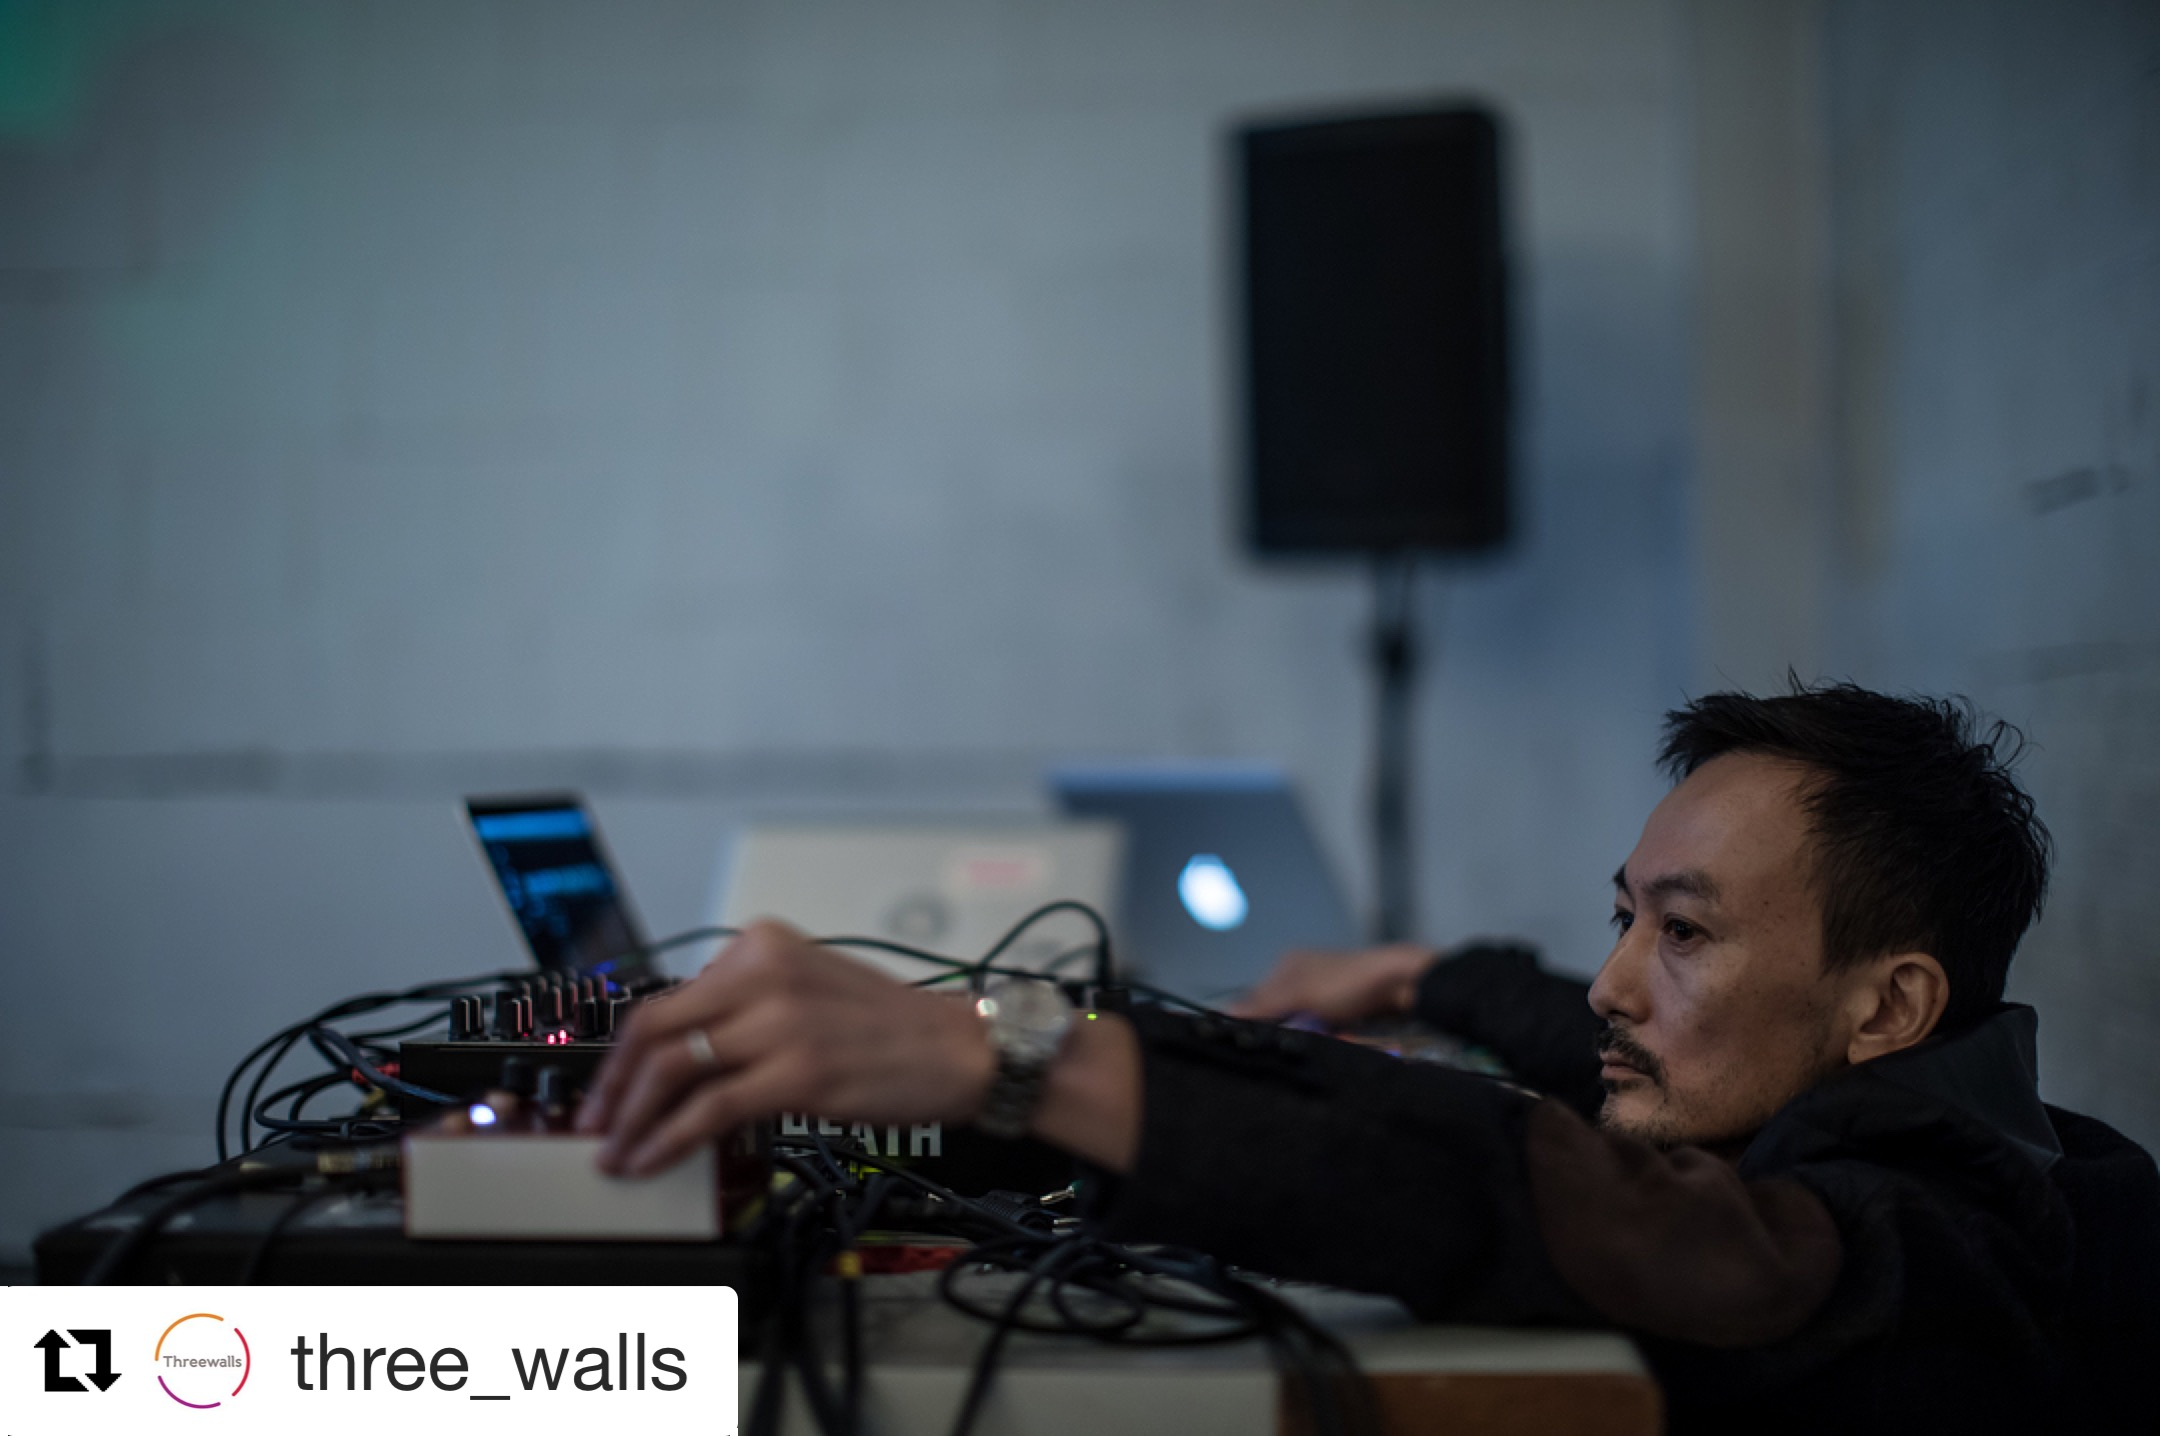 #Repost @three_walls  MAY 24th | 7pm     Begin your Chicago House Music Festival weekend with us at Threewalls.  .  Join us for an evening of experimental sounds with Kikù Hibino, Allen Moore and Distributed Autonomous Organization .     More details in our Bio. Please RSVP! #housemusic #kikuhibino #allenmoore #distributedautonomousorganization #experimentalart #chicagoart #chicagoartist #threewalls